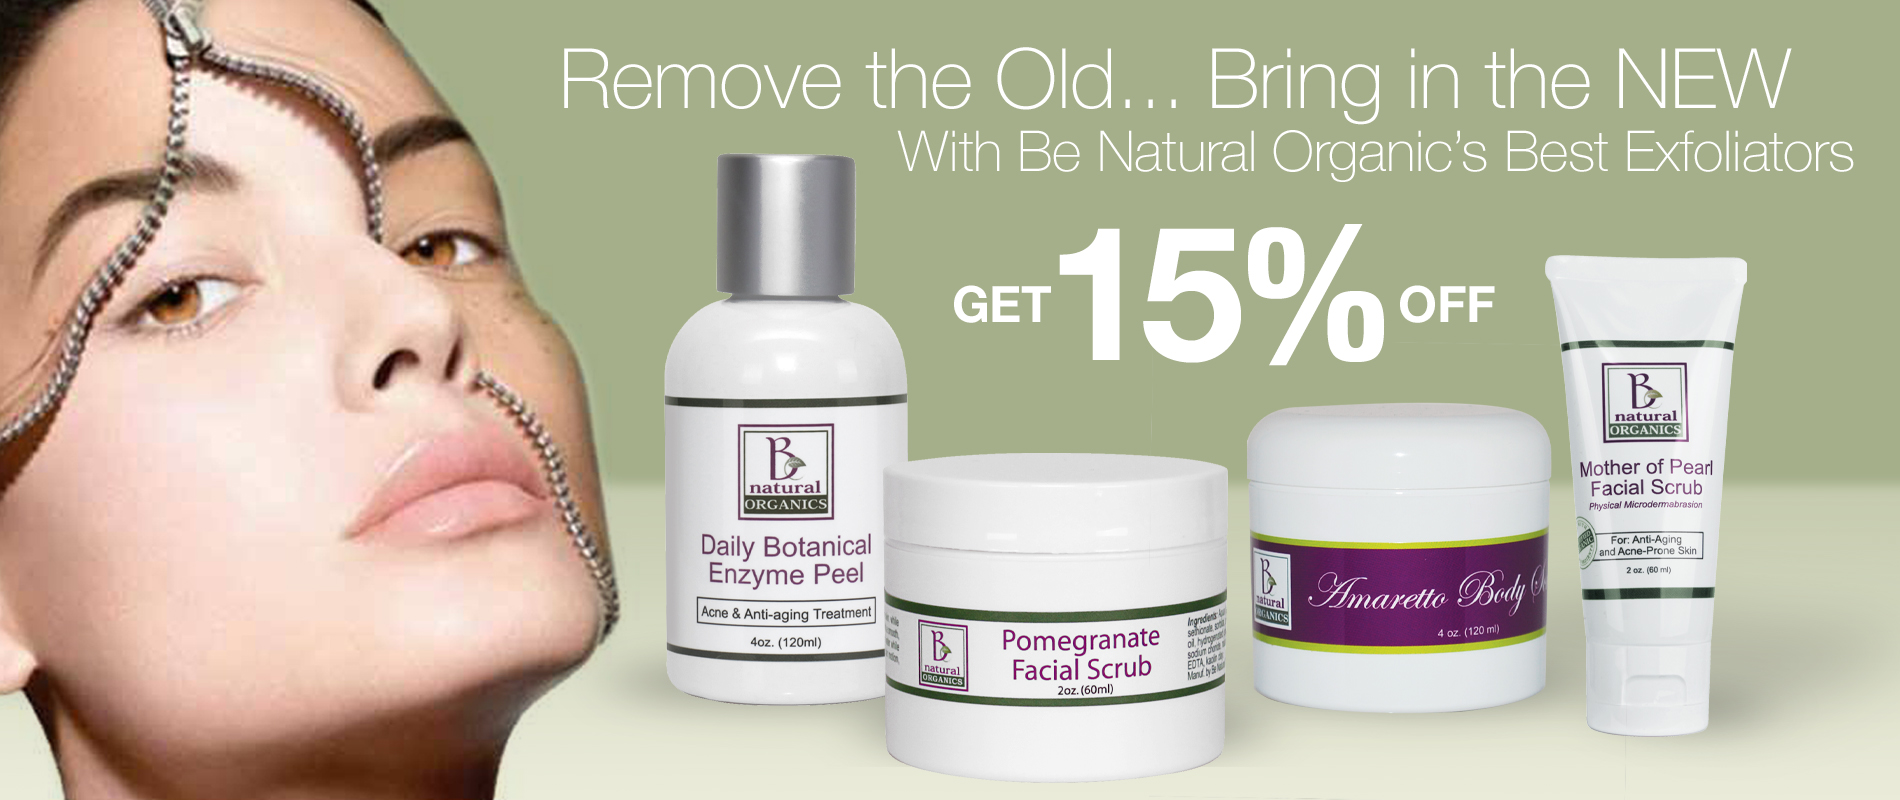 REMOVE THE OLD EXFOLIATION SALE 15%OFF 1900x800 v2